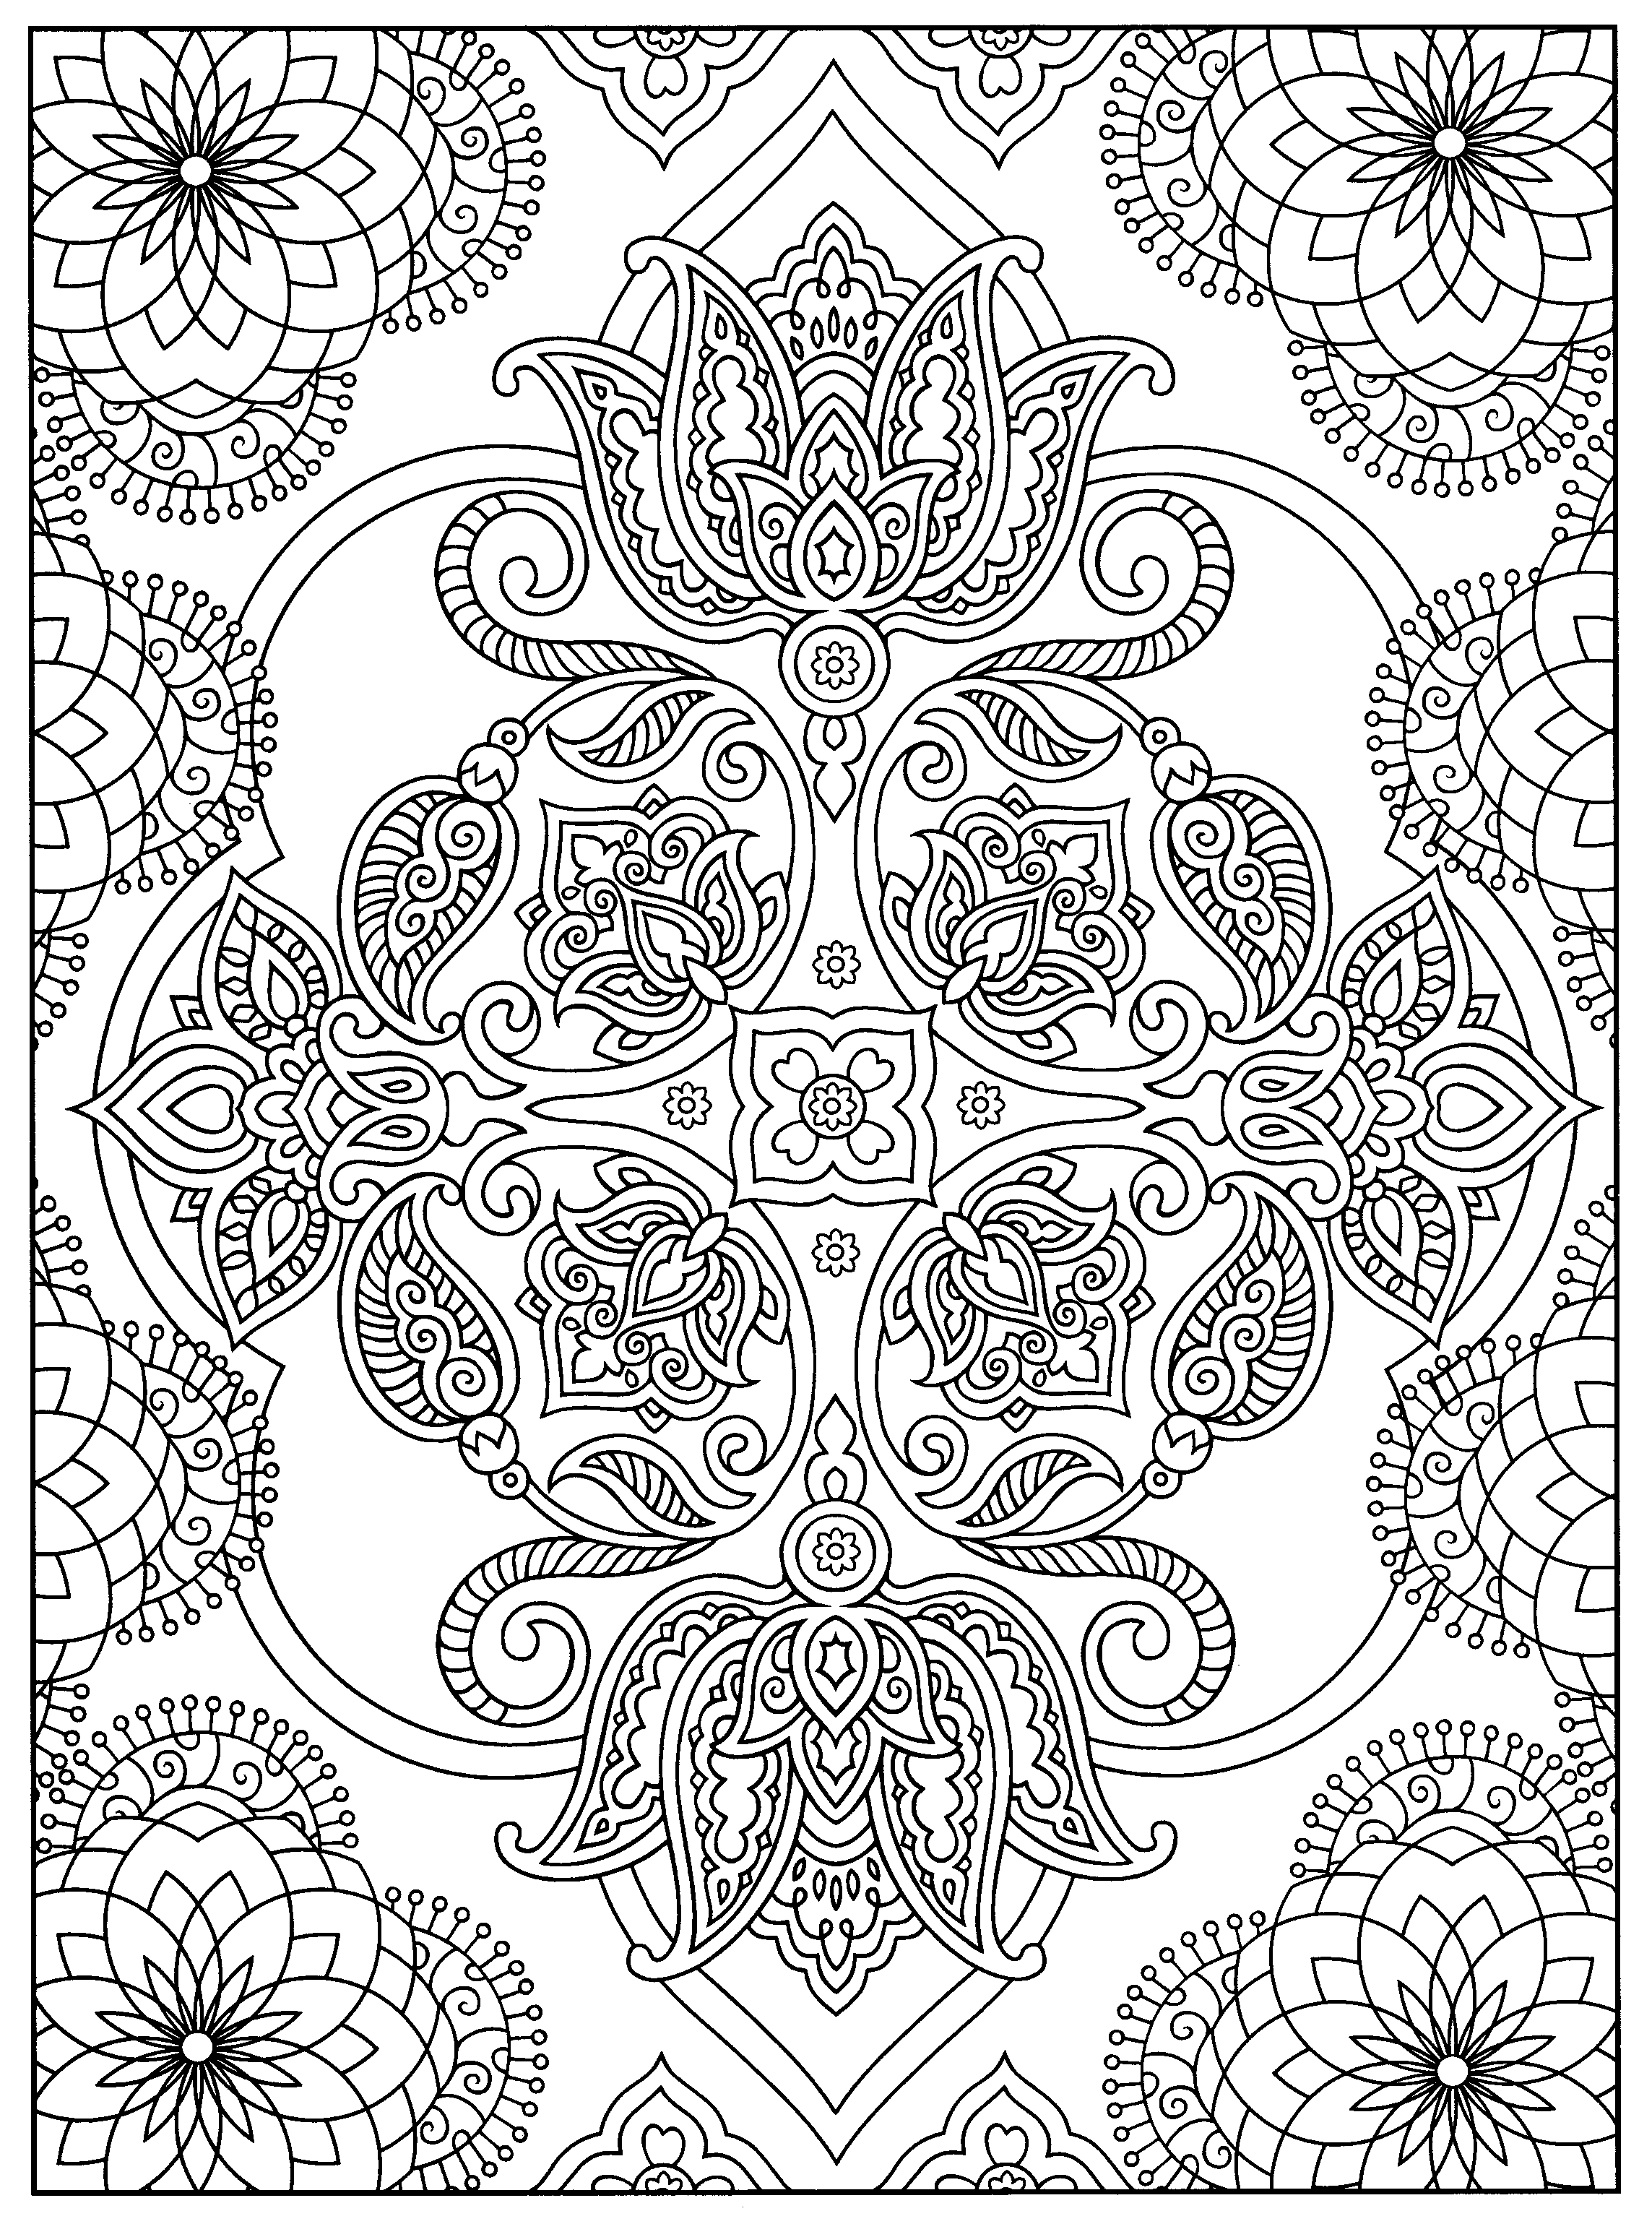 A Favorite From Mehndi Designs By Marty Noble Mandala Coloring Pages Coloring Pages Coloring Book Pages